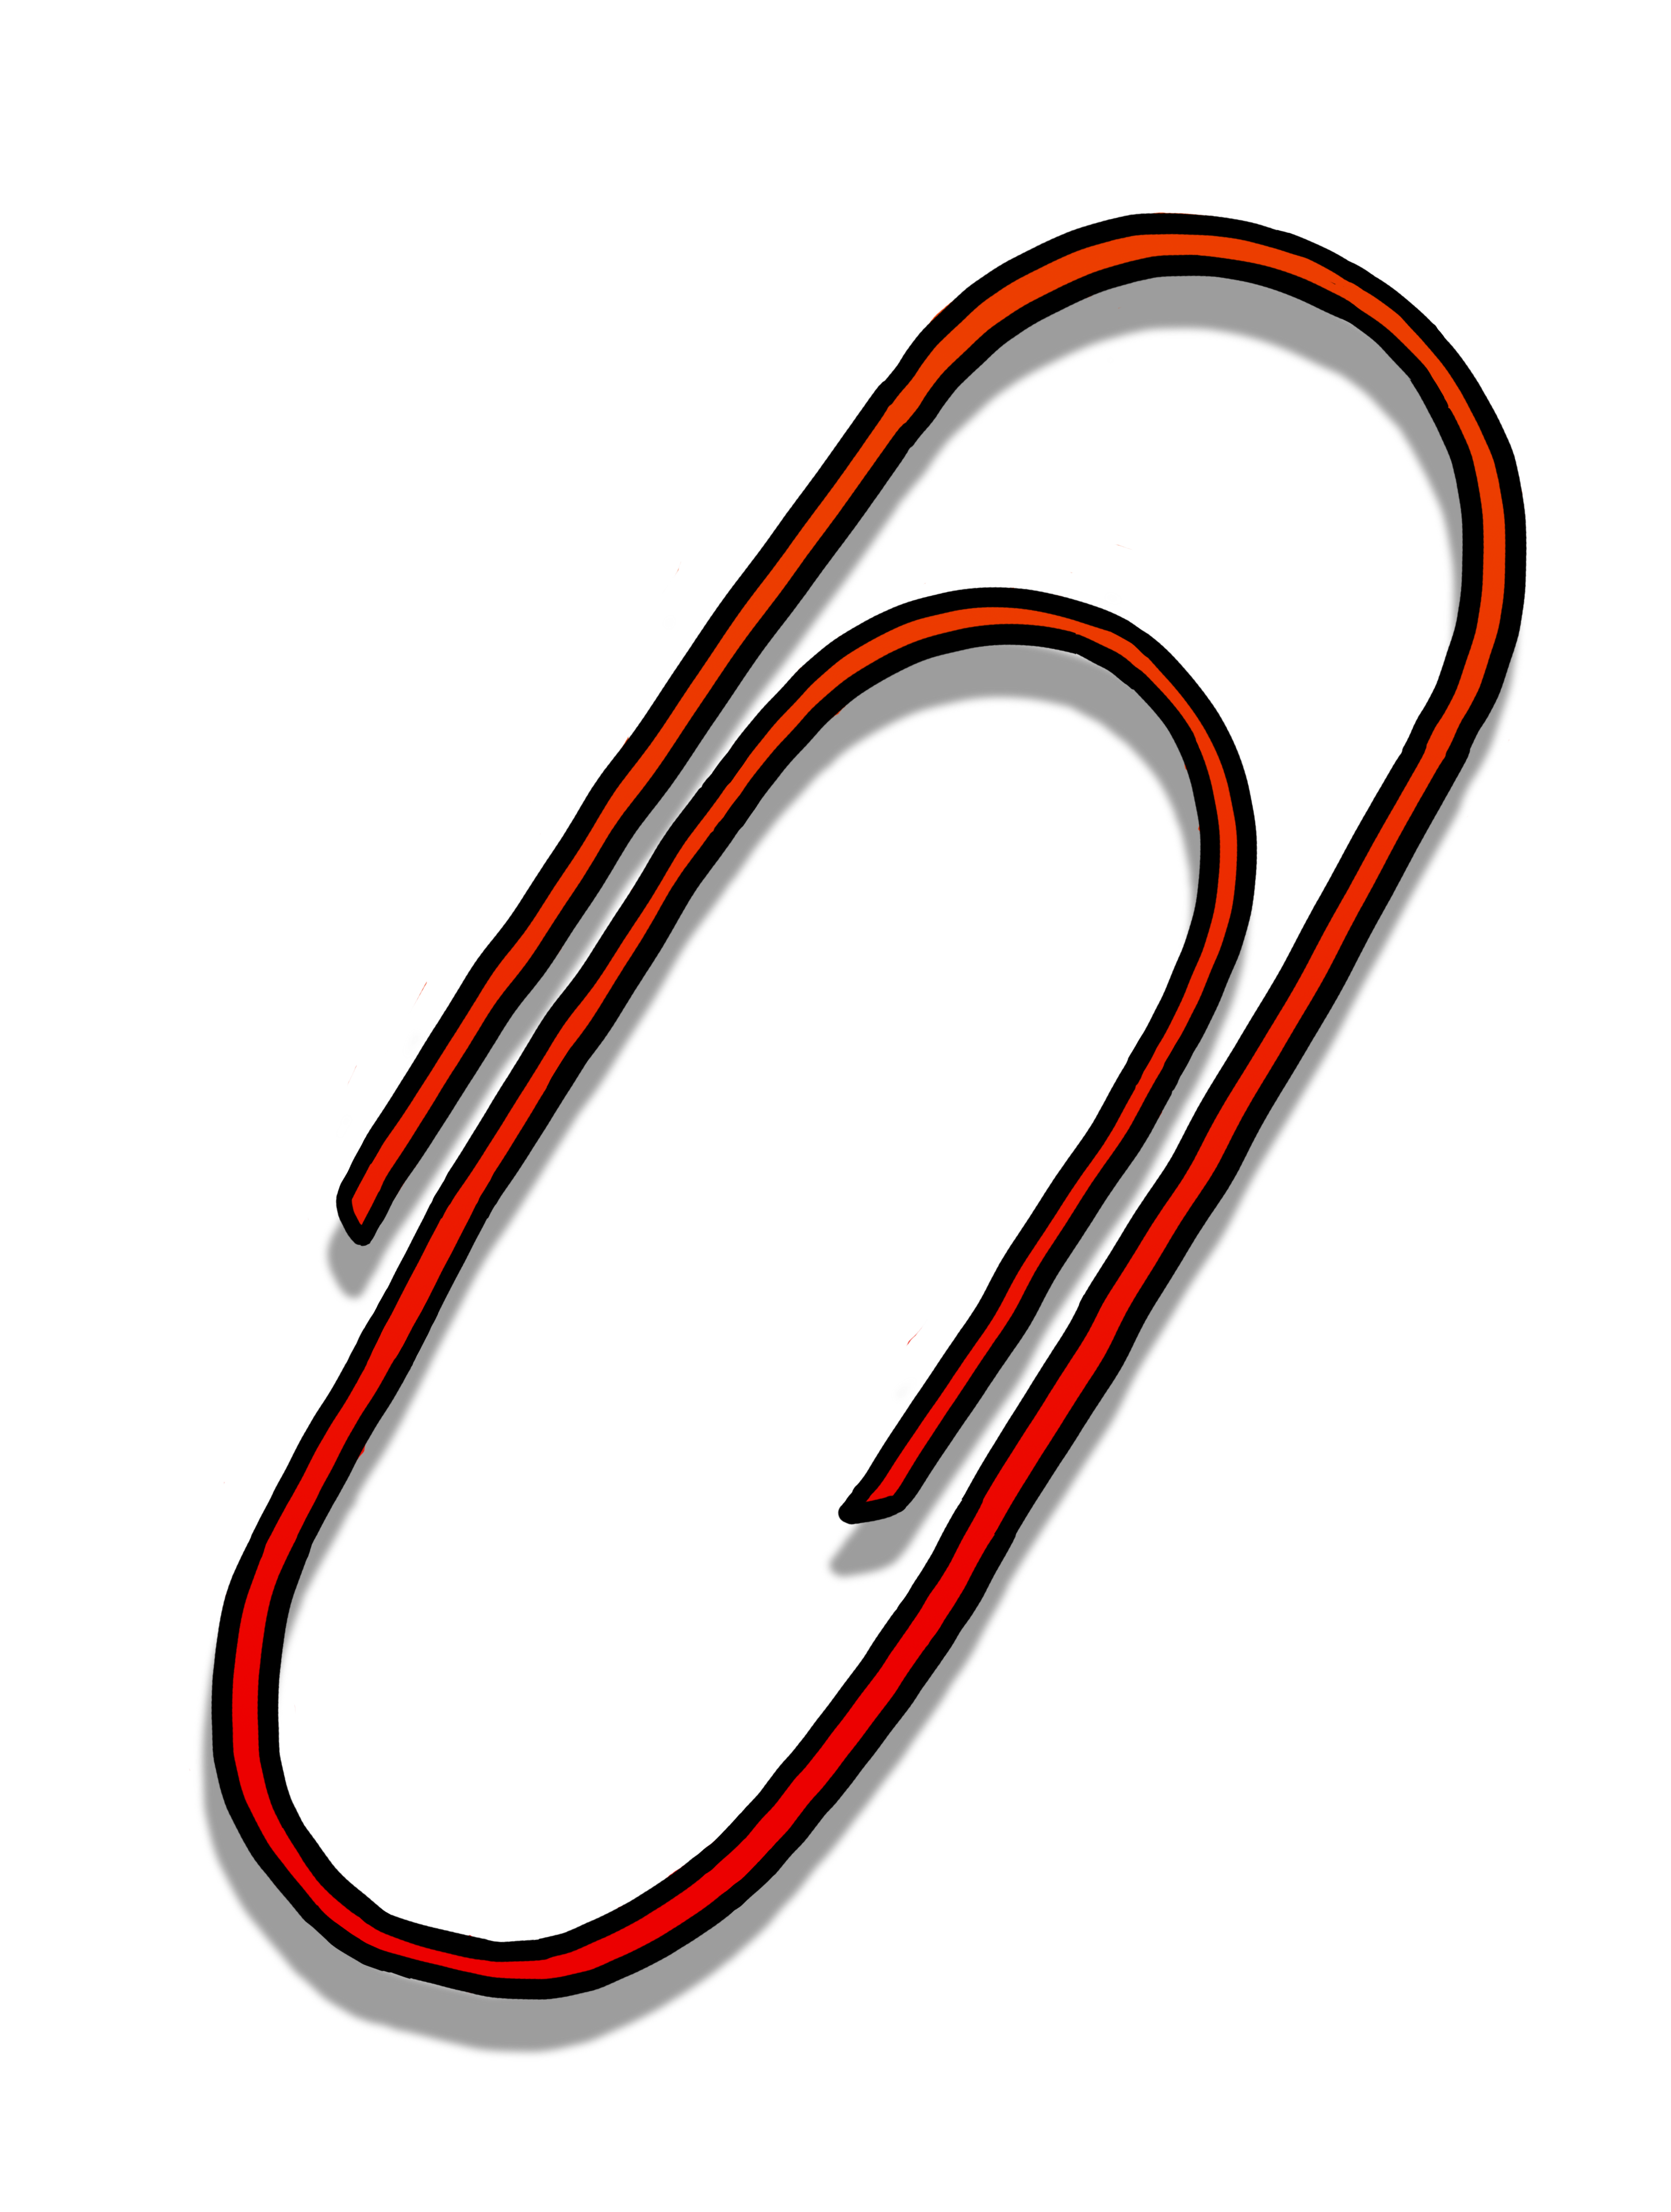 2906x3847 Paperclip Clipart